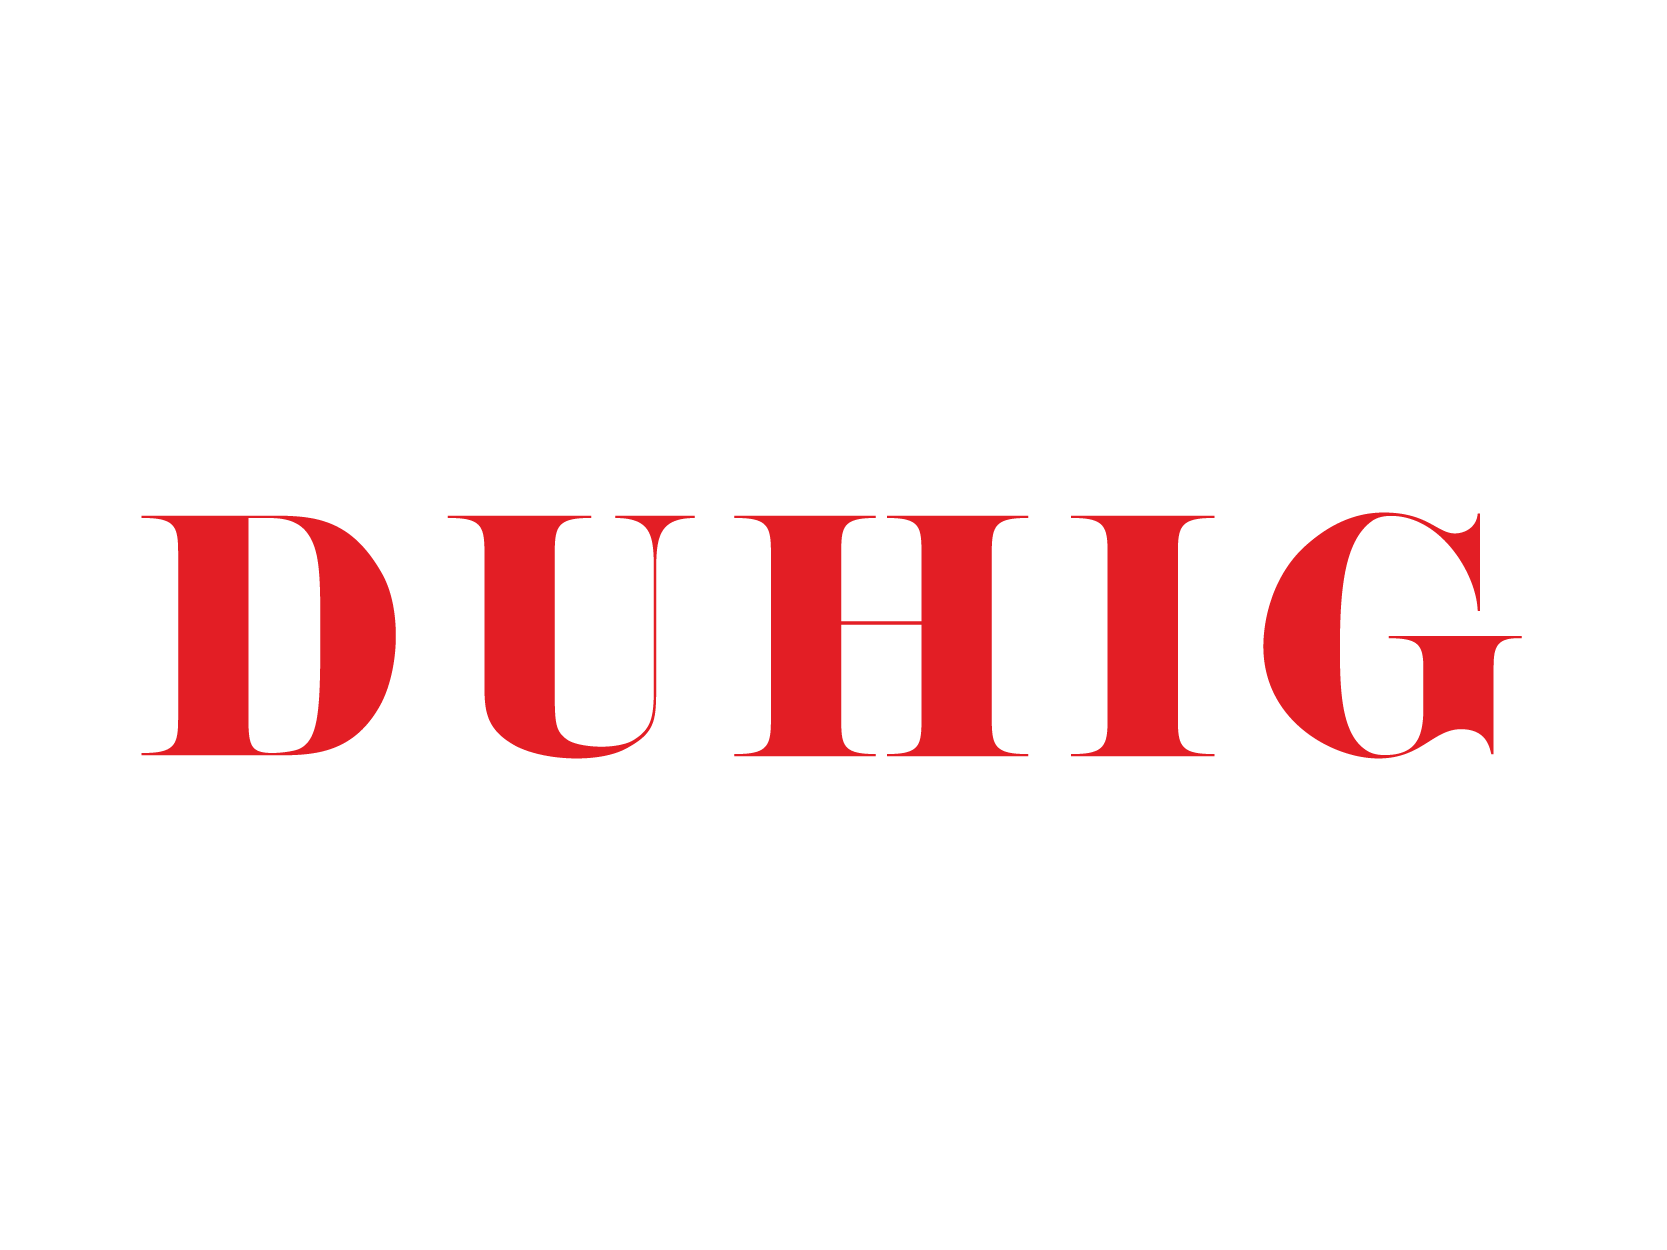 suhig-01.png